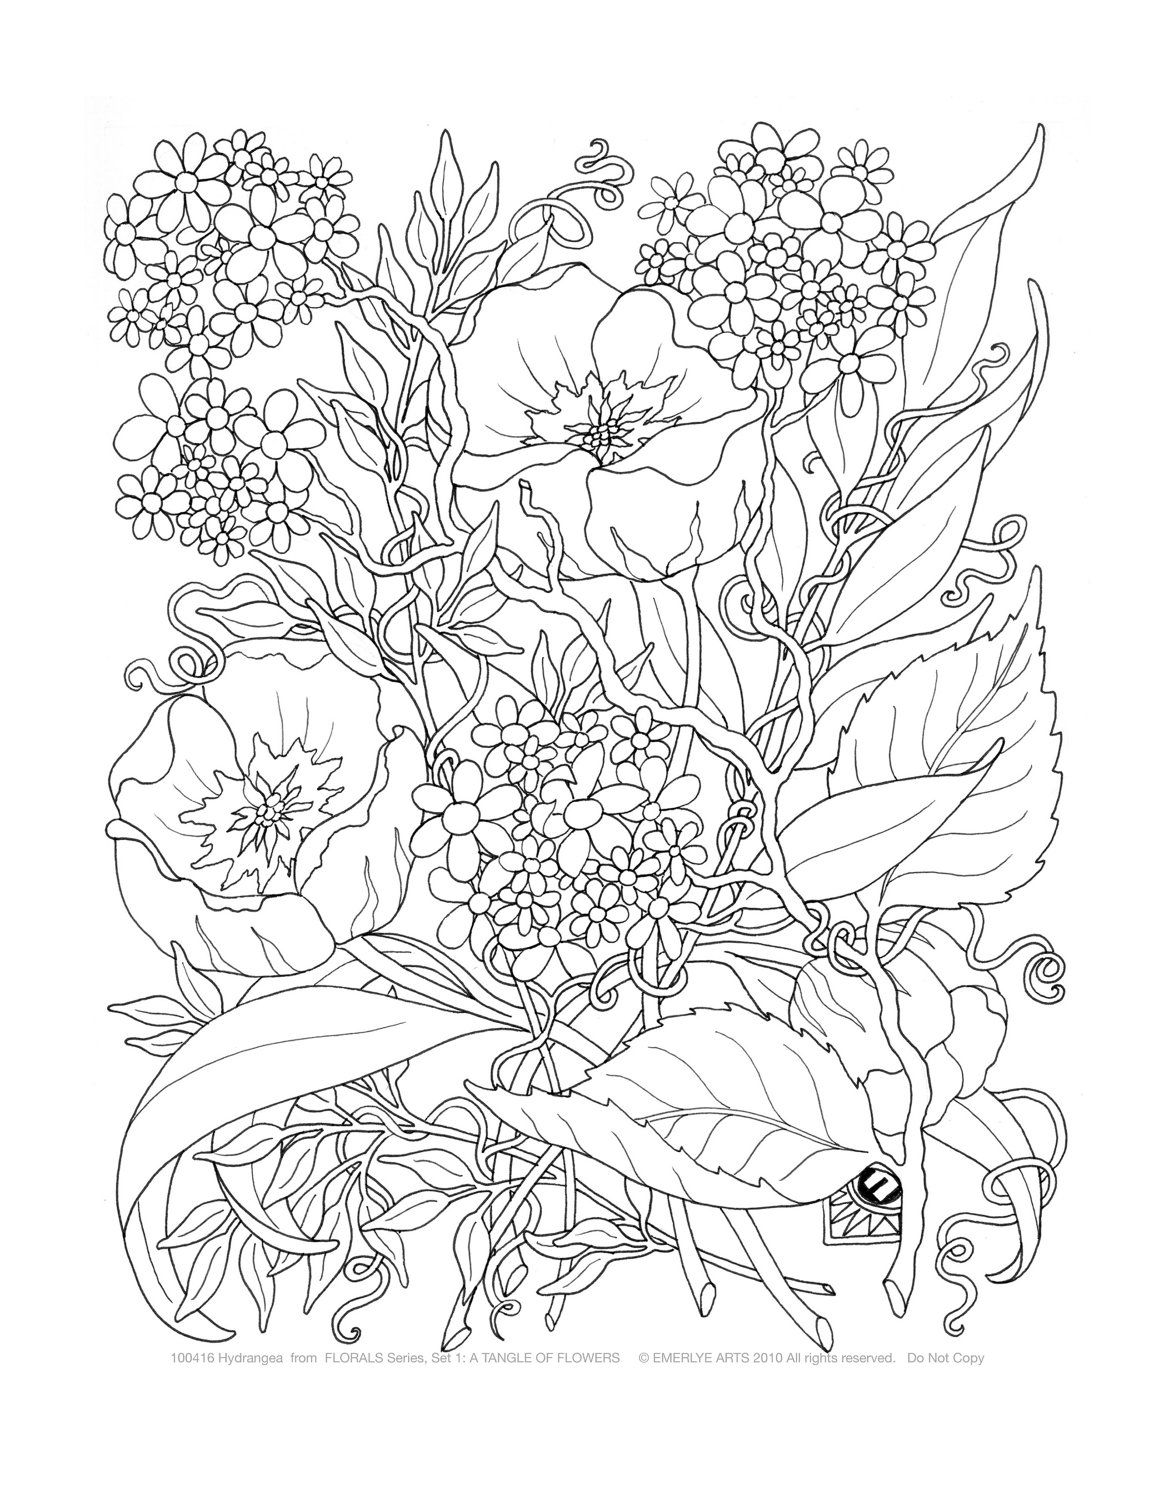 Online virtual coloring - Get The Latest Free Coloring Pages For Adults Images Favorite Coloring Pages To Print Online